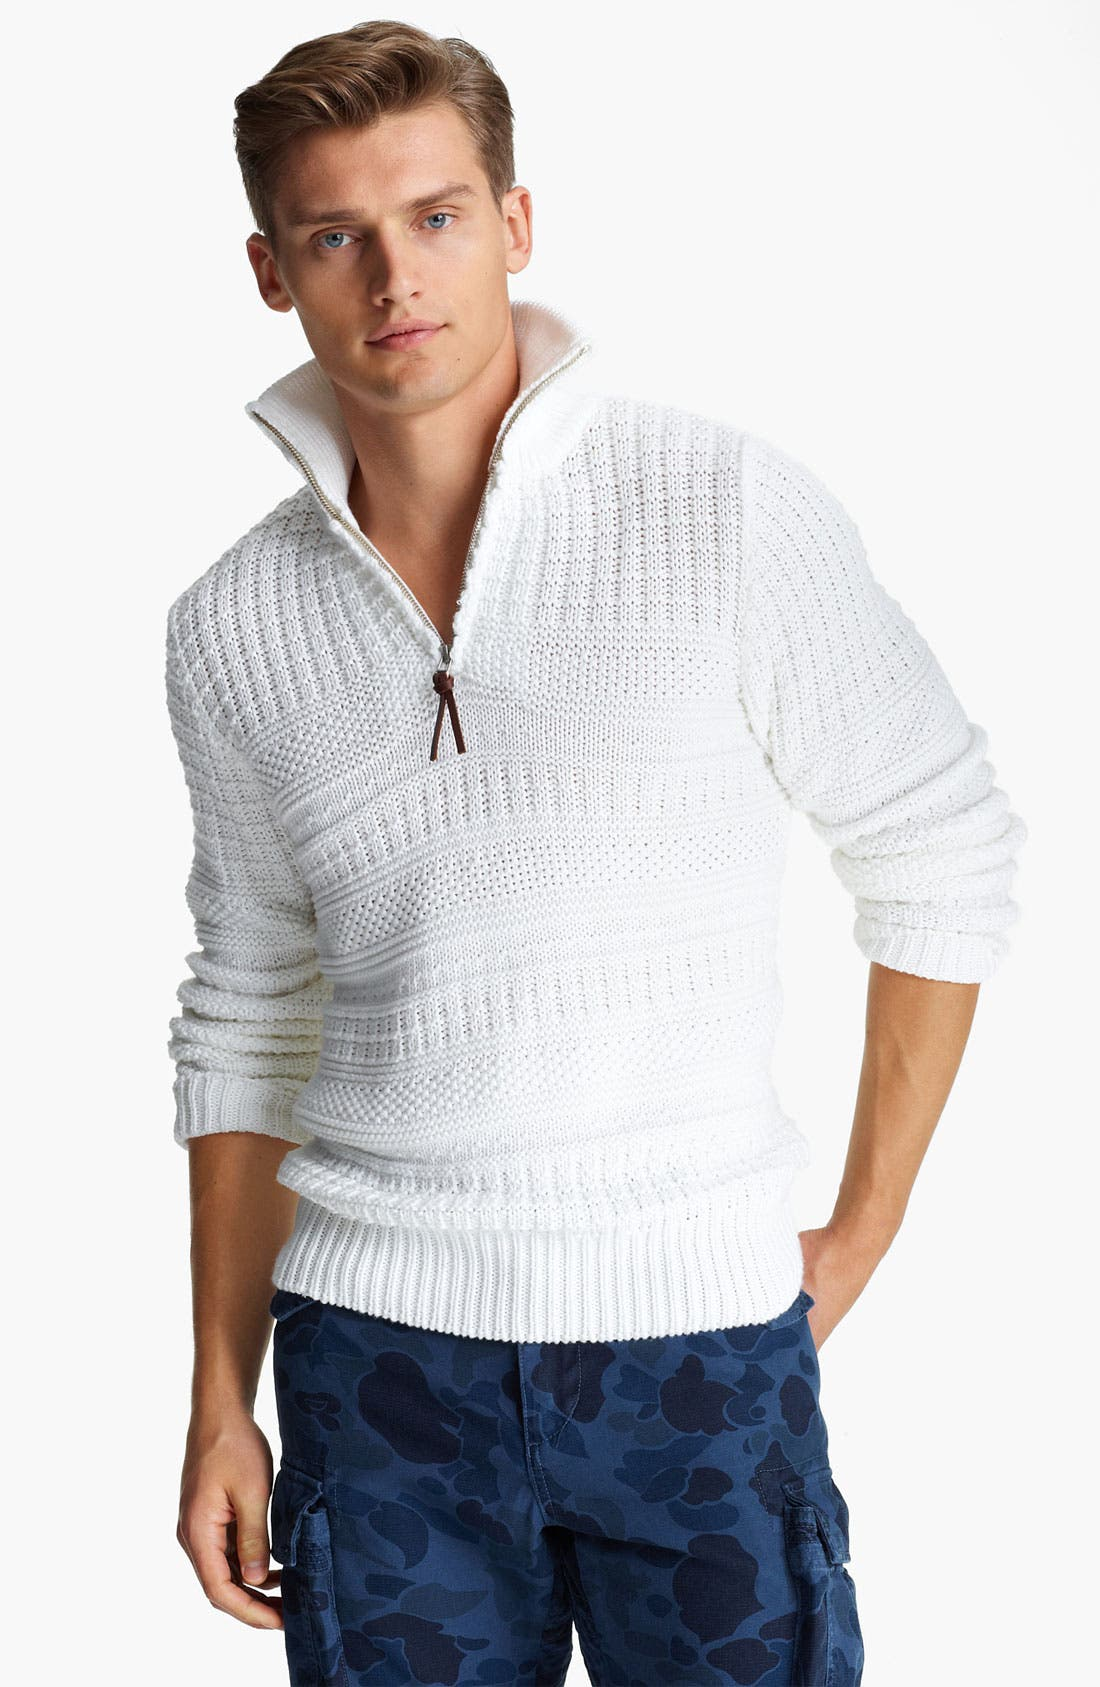 Alternate Image 1 Selected - Gant by Michael Bastian Quarter Zip Pullover Sweater